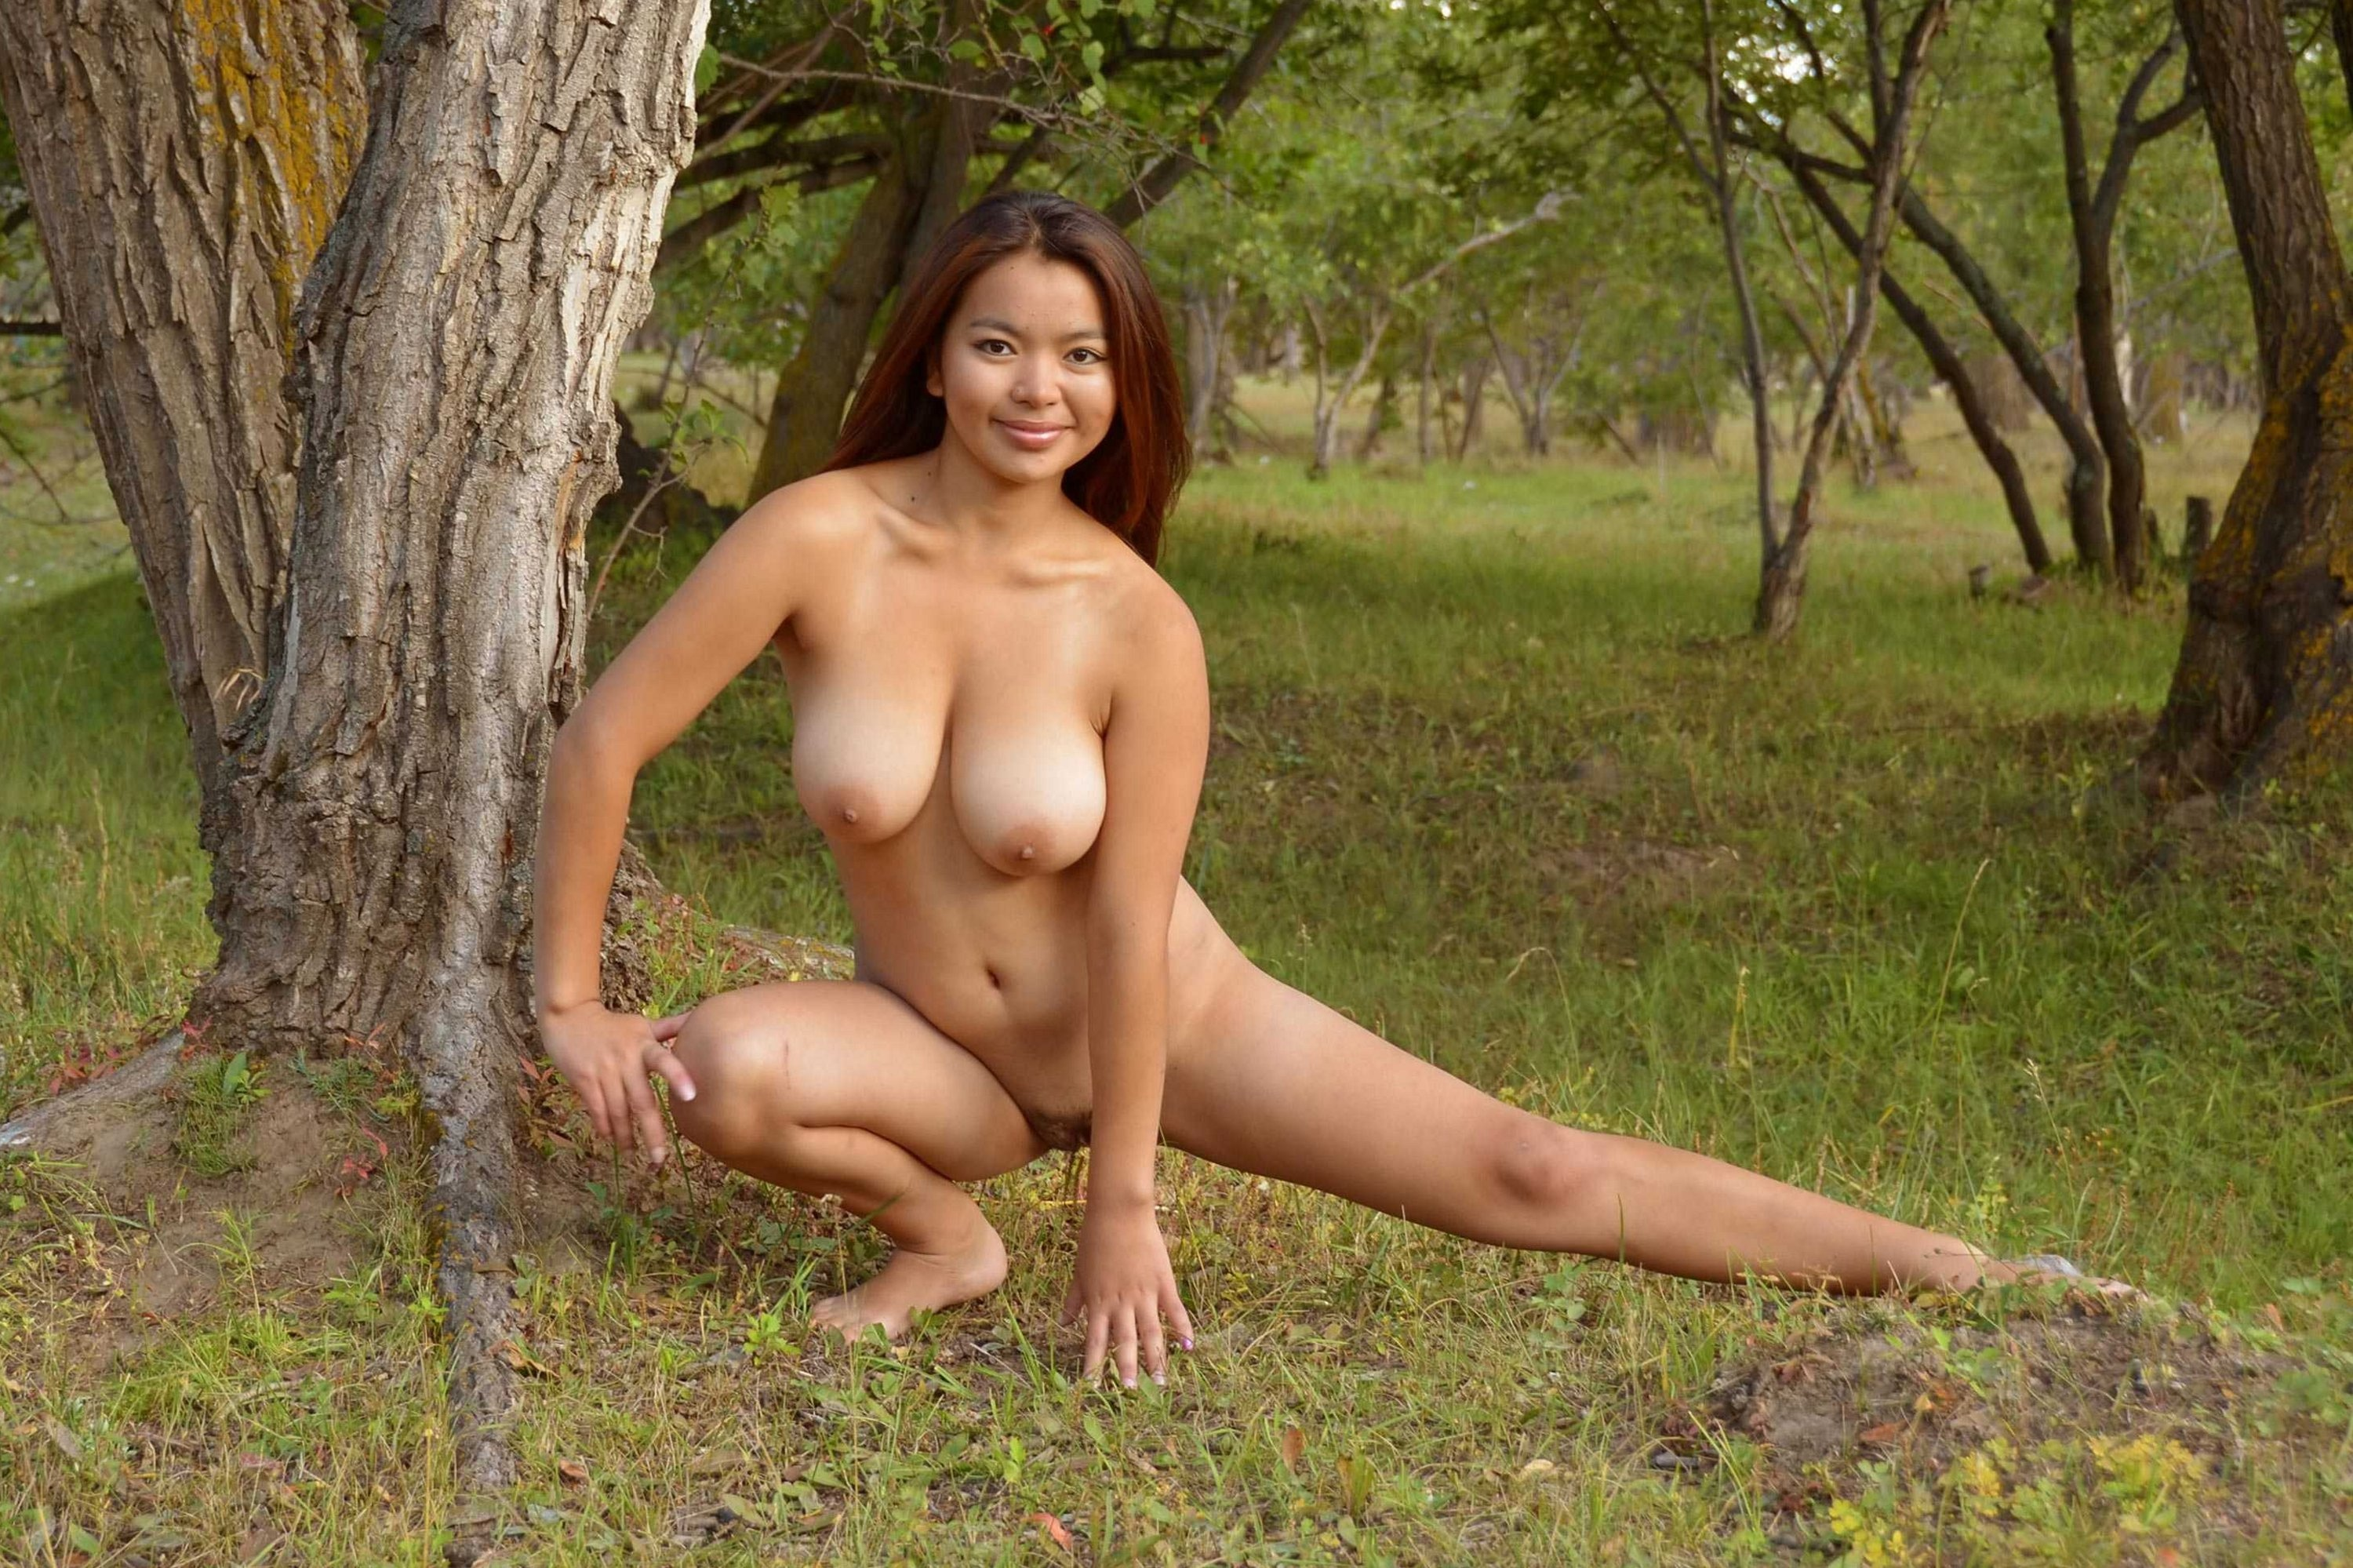 from Yousef hot sexy women nude outdoors